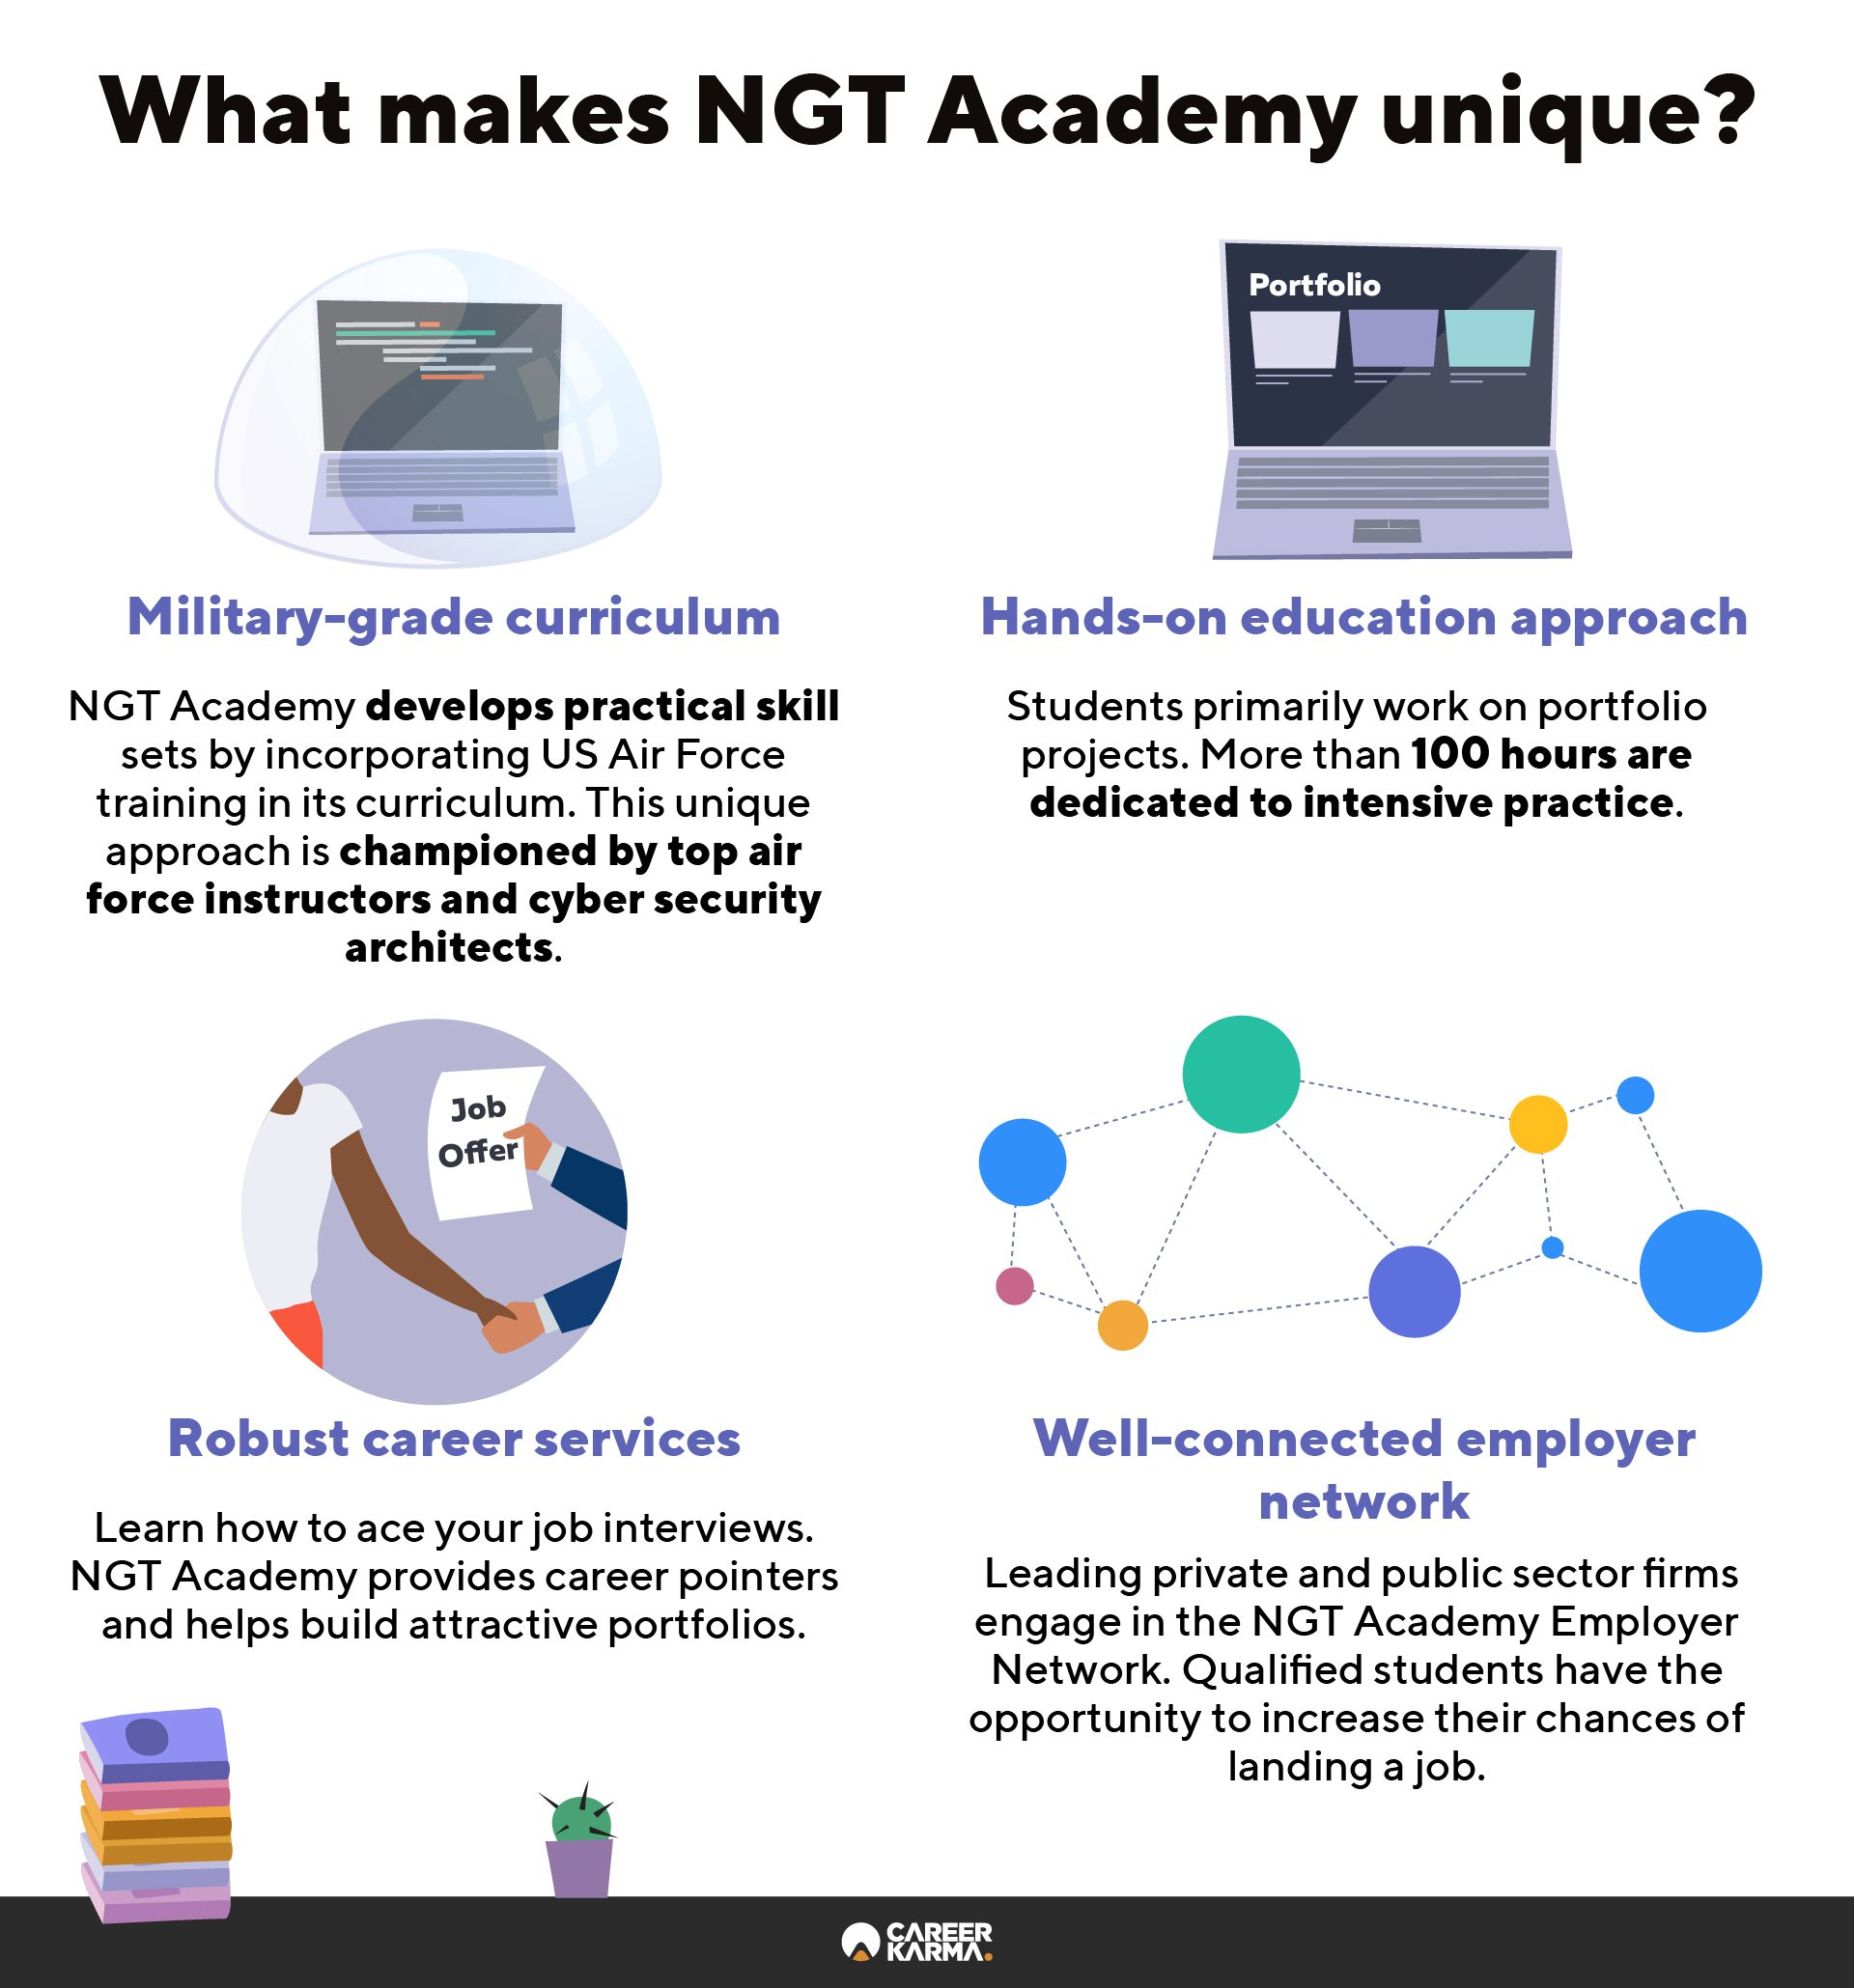 An infographic covering the key features of NGT Academy